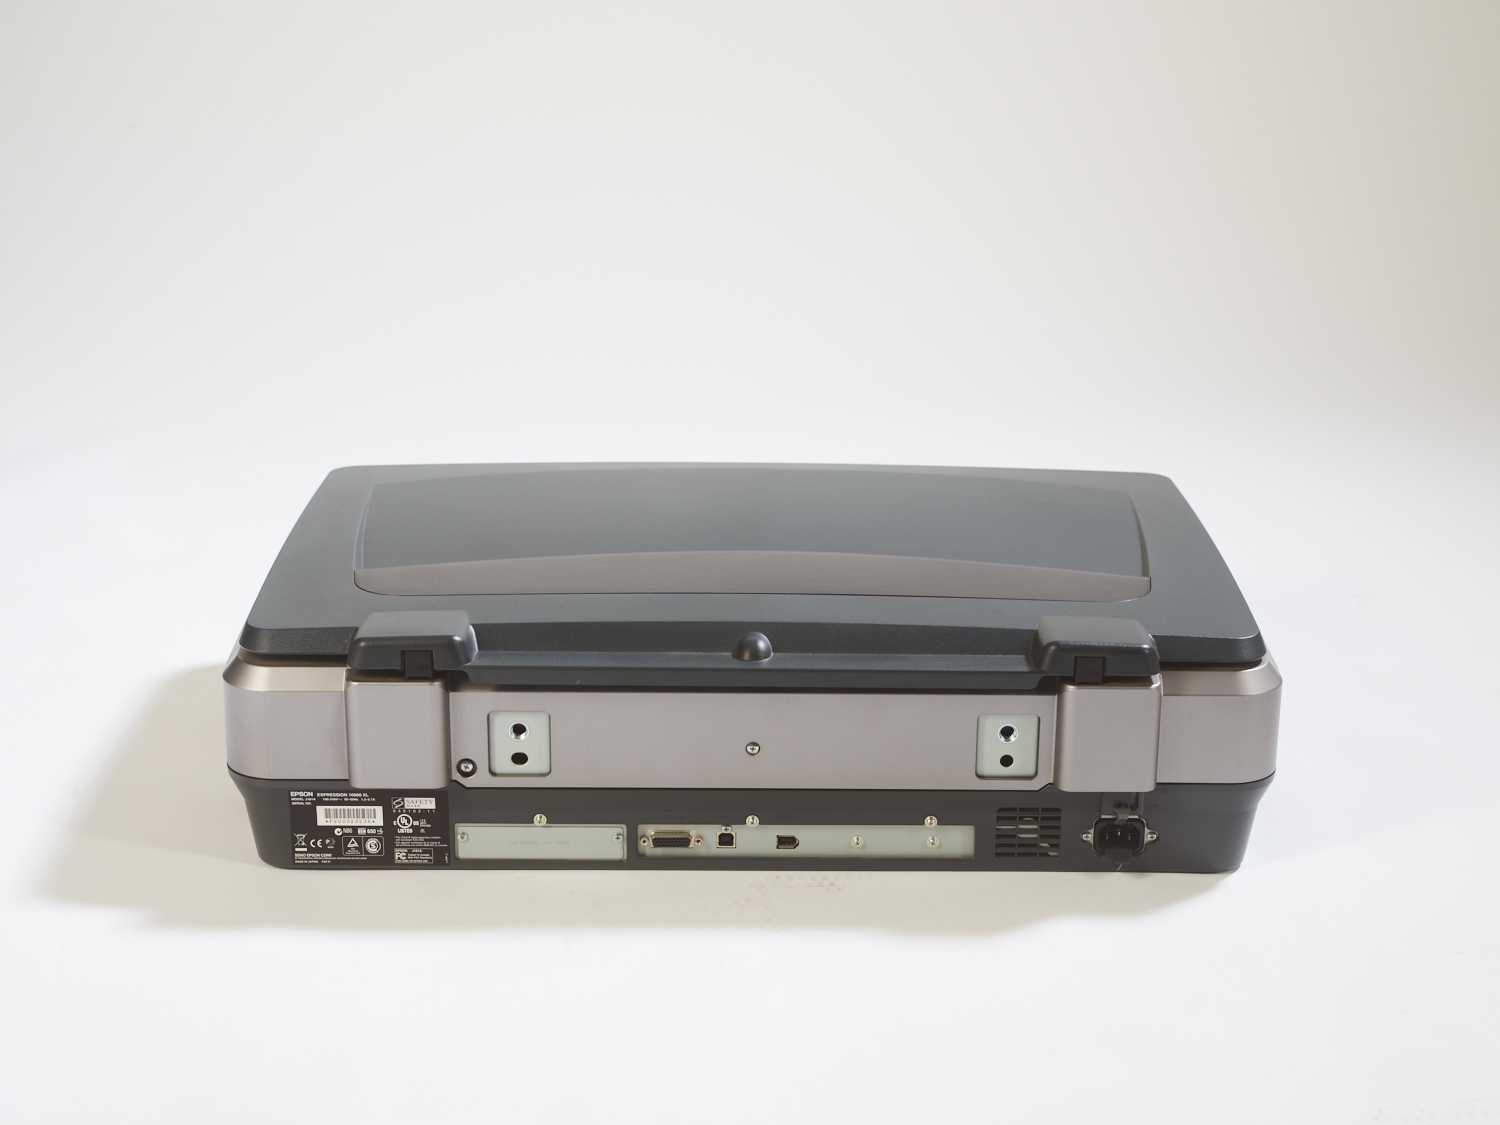 Studio shot of the back of an Epson Expression 10000XL scanner